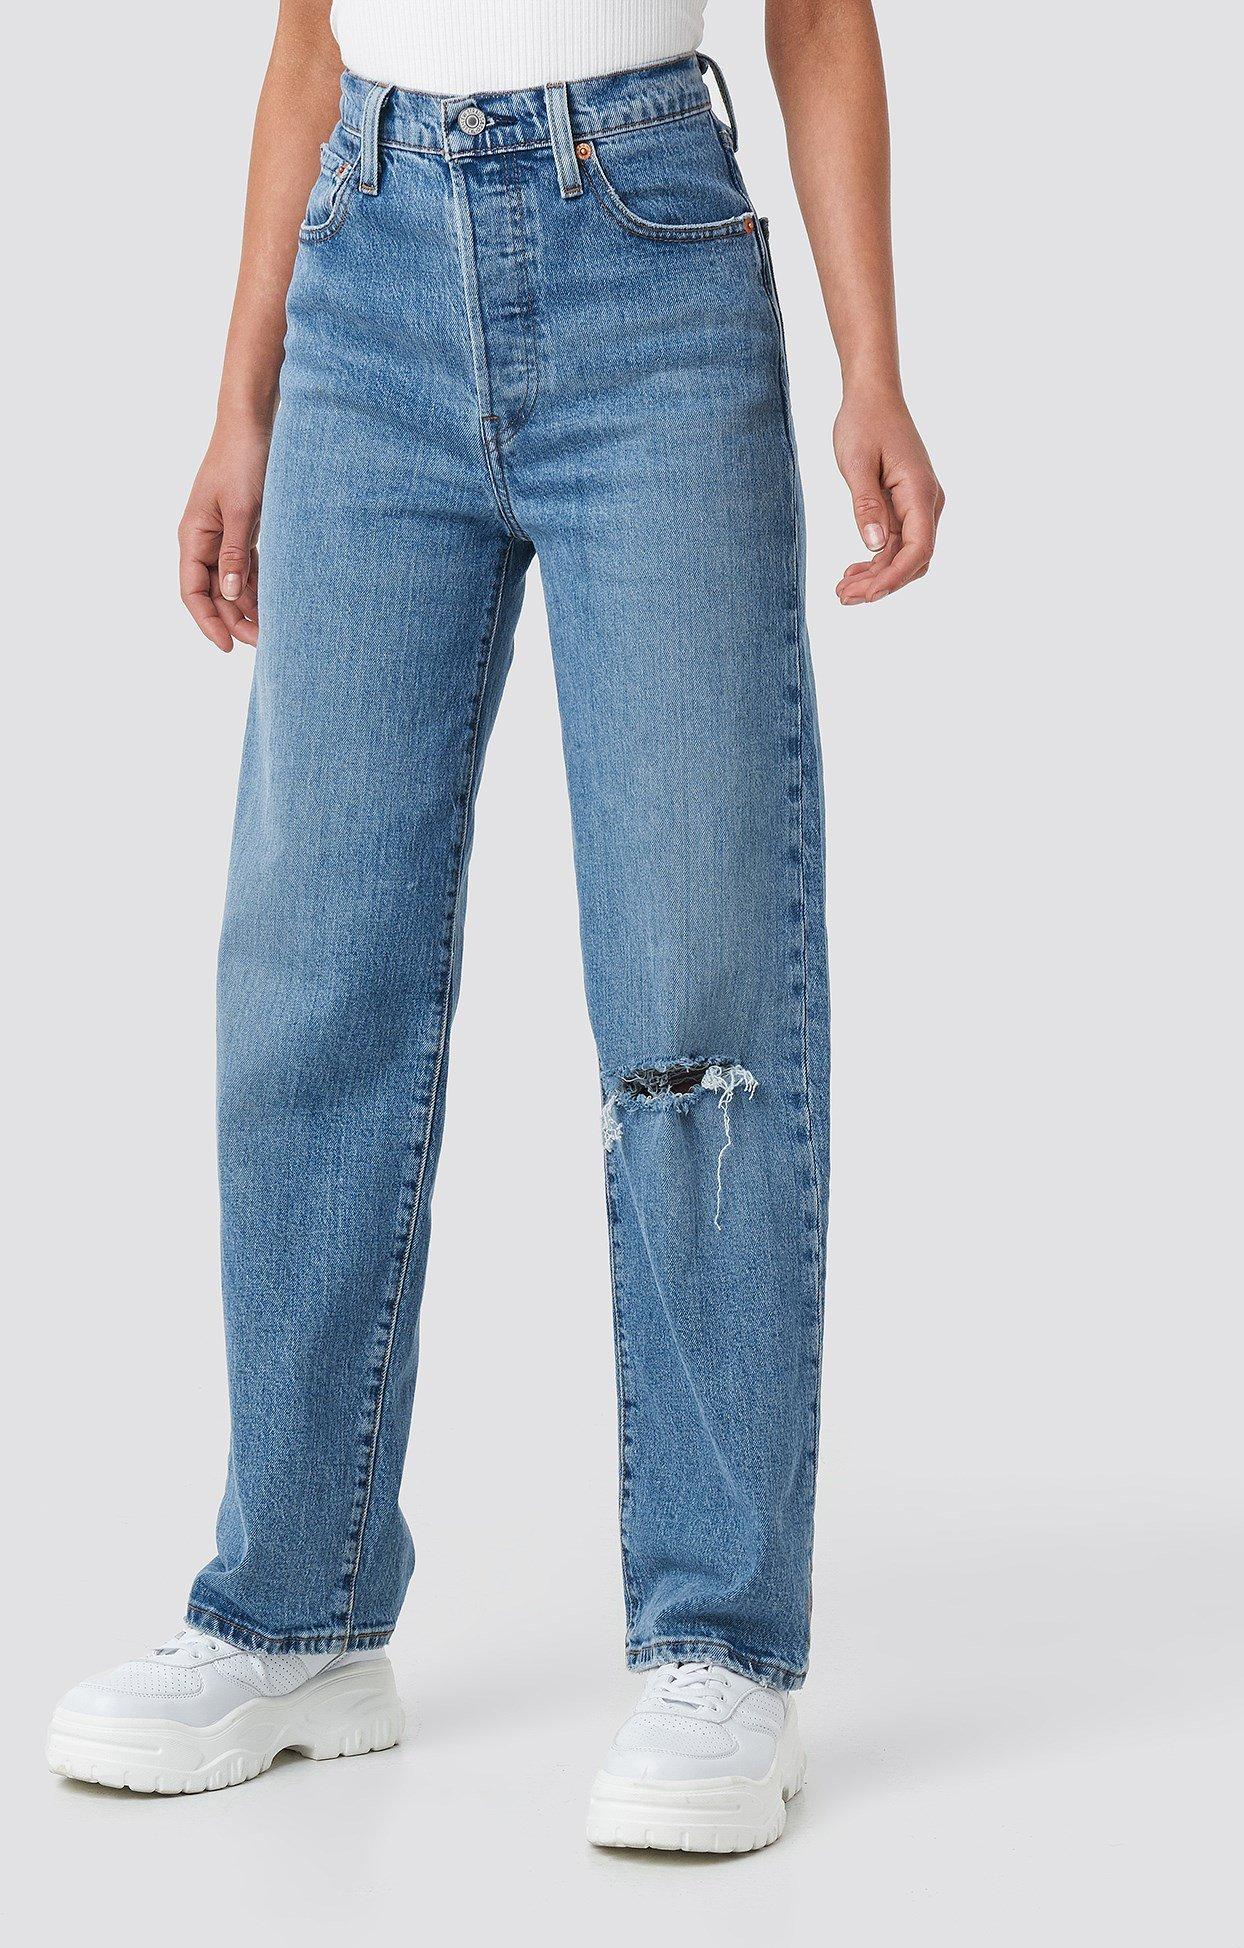 Levi's Ribcage Jeans (Dame)